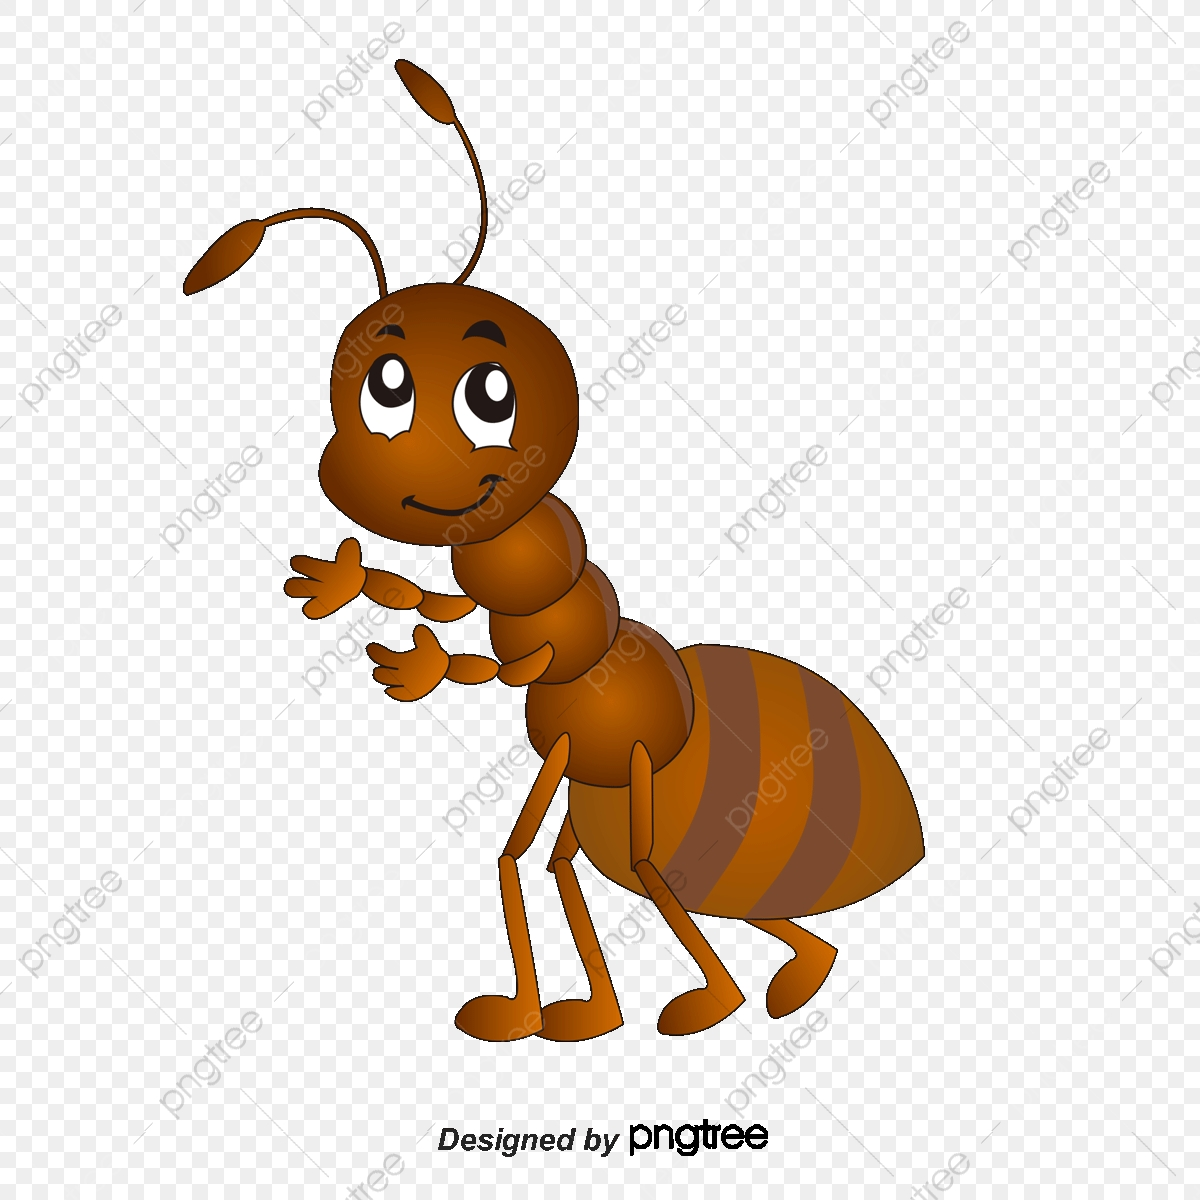 Cartoon Ants Png Images Vector And Psd Files Free Download On Pngtree